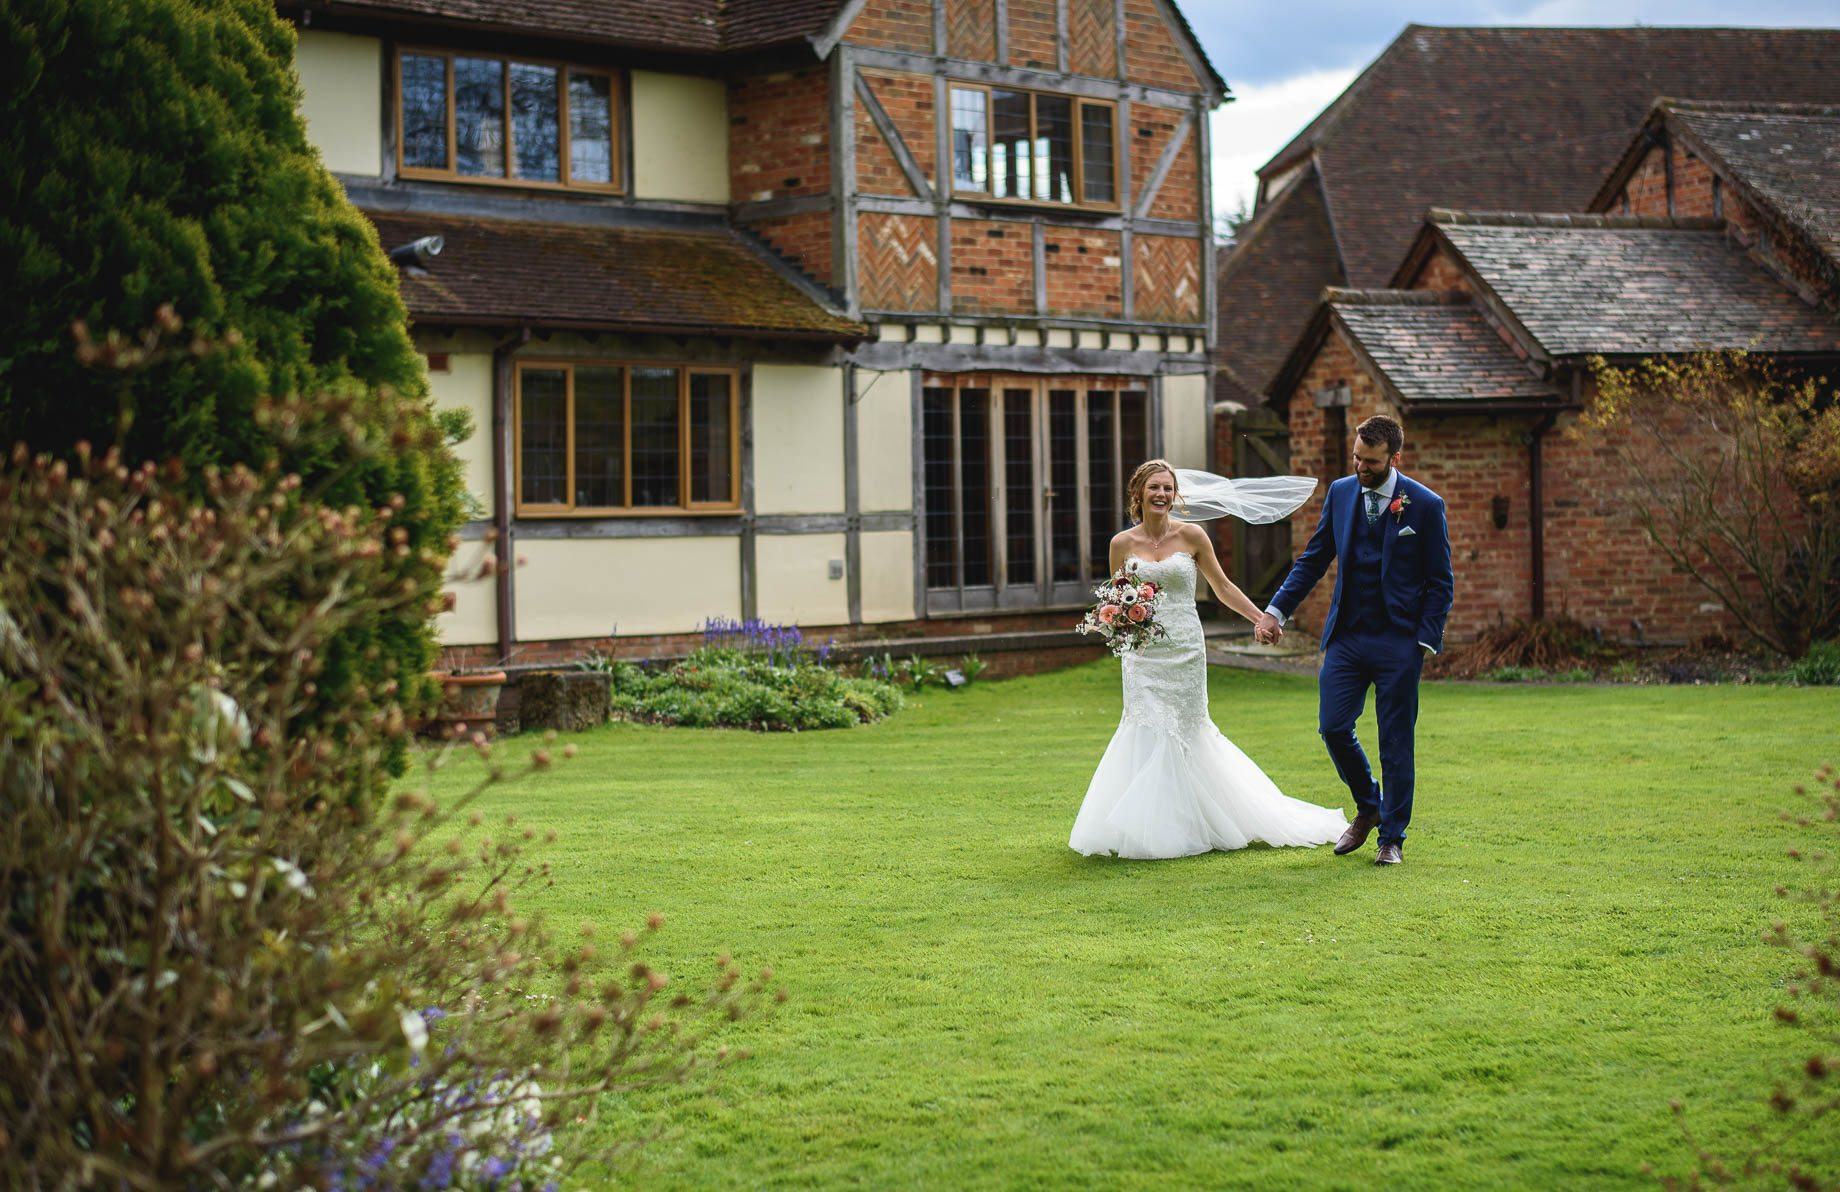 Rivervale Barn wedding photography by Guy Collier - Claire and Simon (88 of 133)